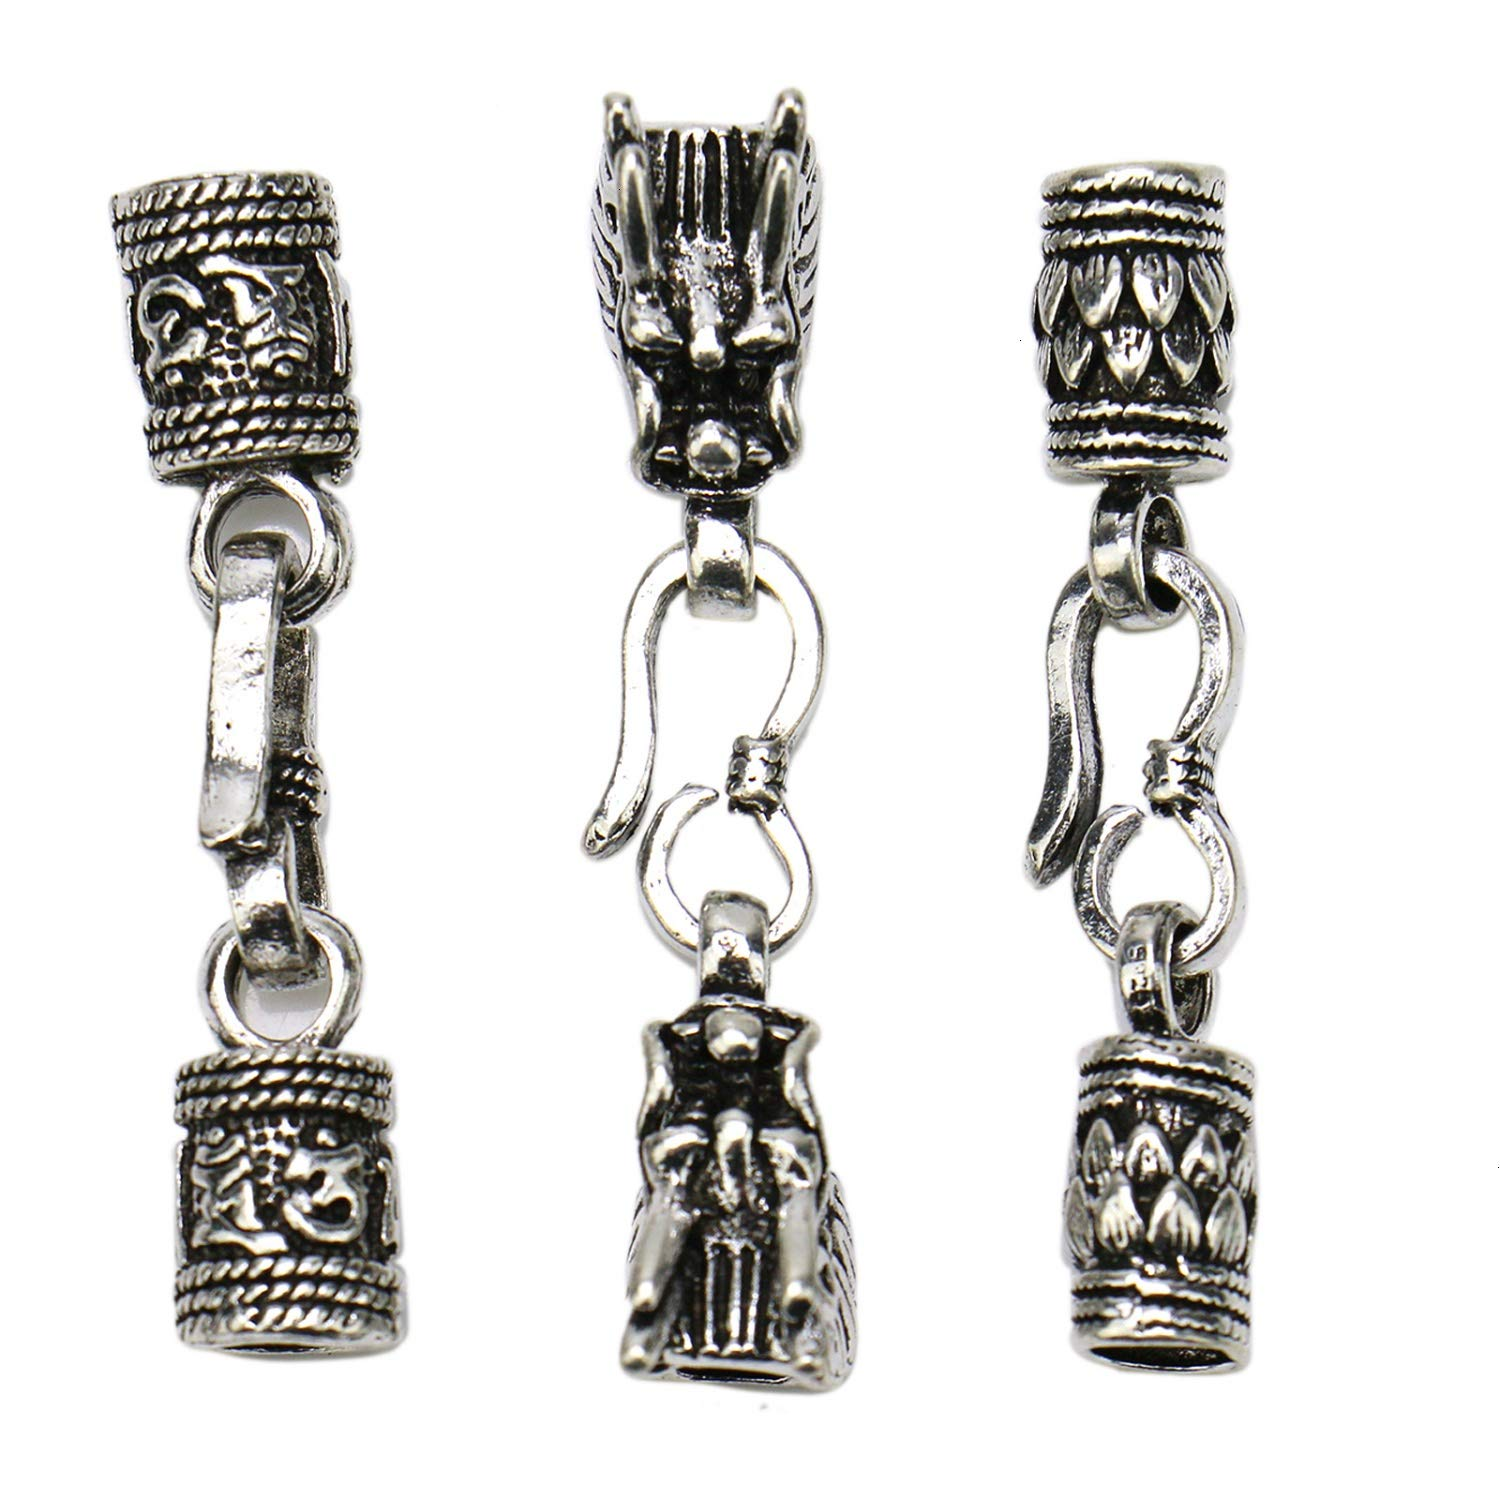 JETEHO 6Pcs Antique Silver Dragon Head End Caps Connector for Round Leather Cord DIY Bracelets Findings